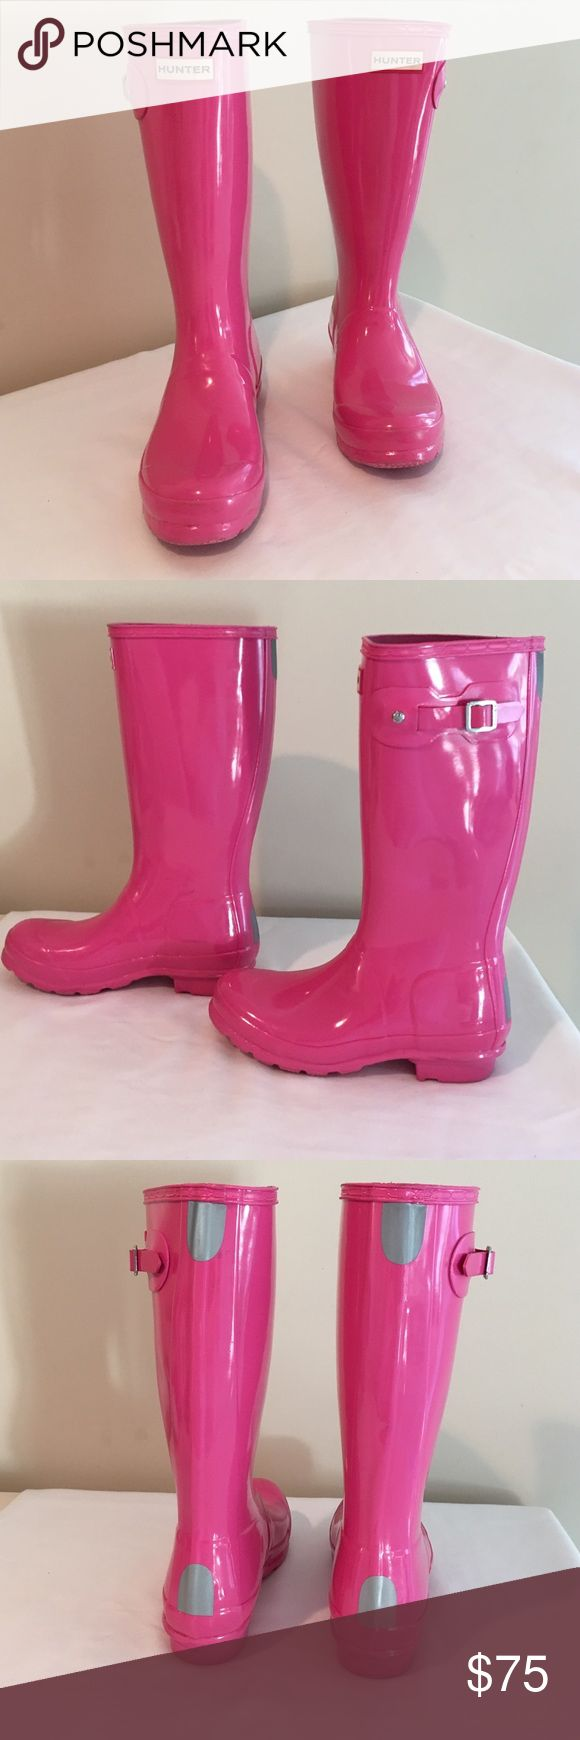 Hunter Hot pink Rain Boots! Worn once. Size 4/5. Hunter Shoes Winter & Rain Boots